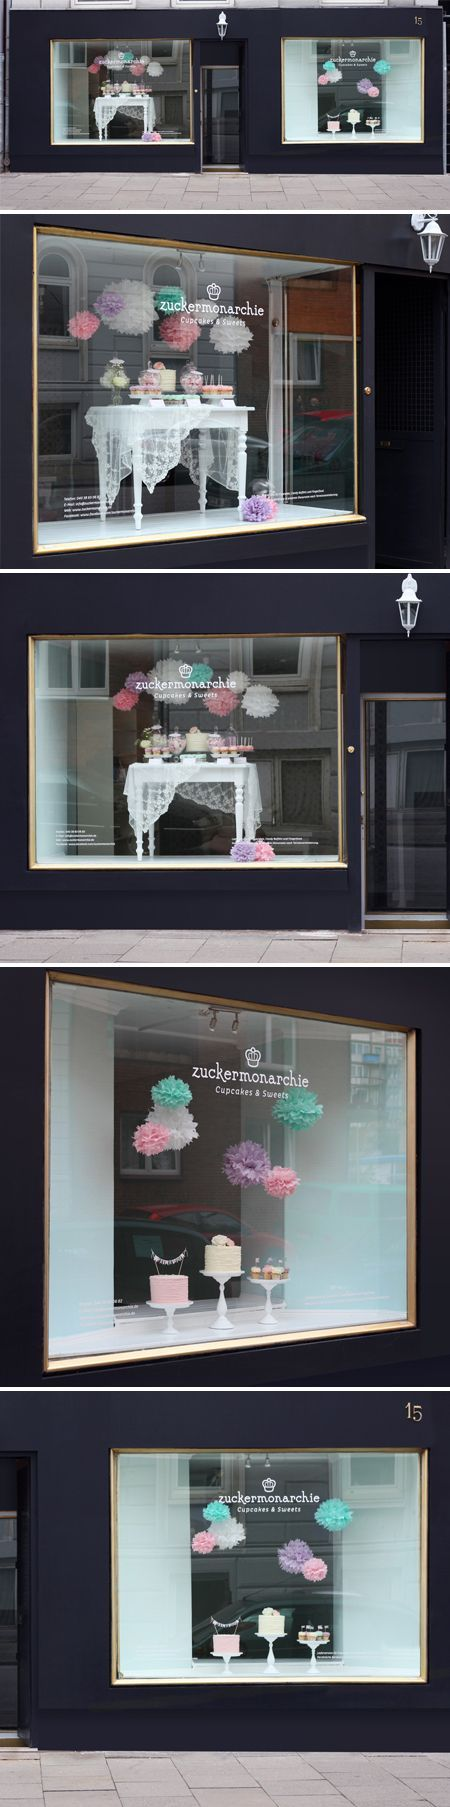 cute dessert table display in front window @Heather Brannan